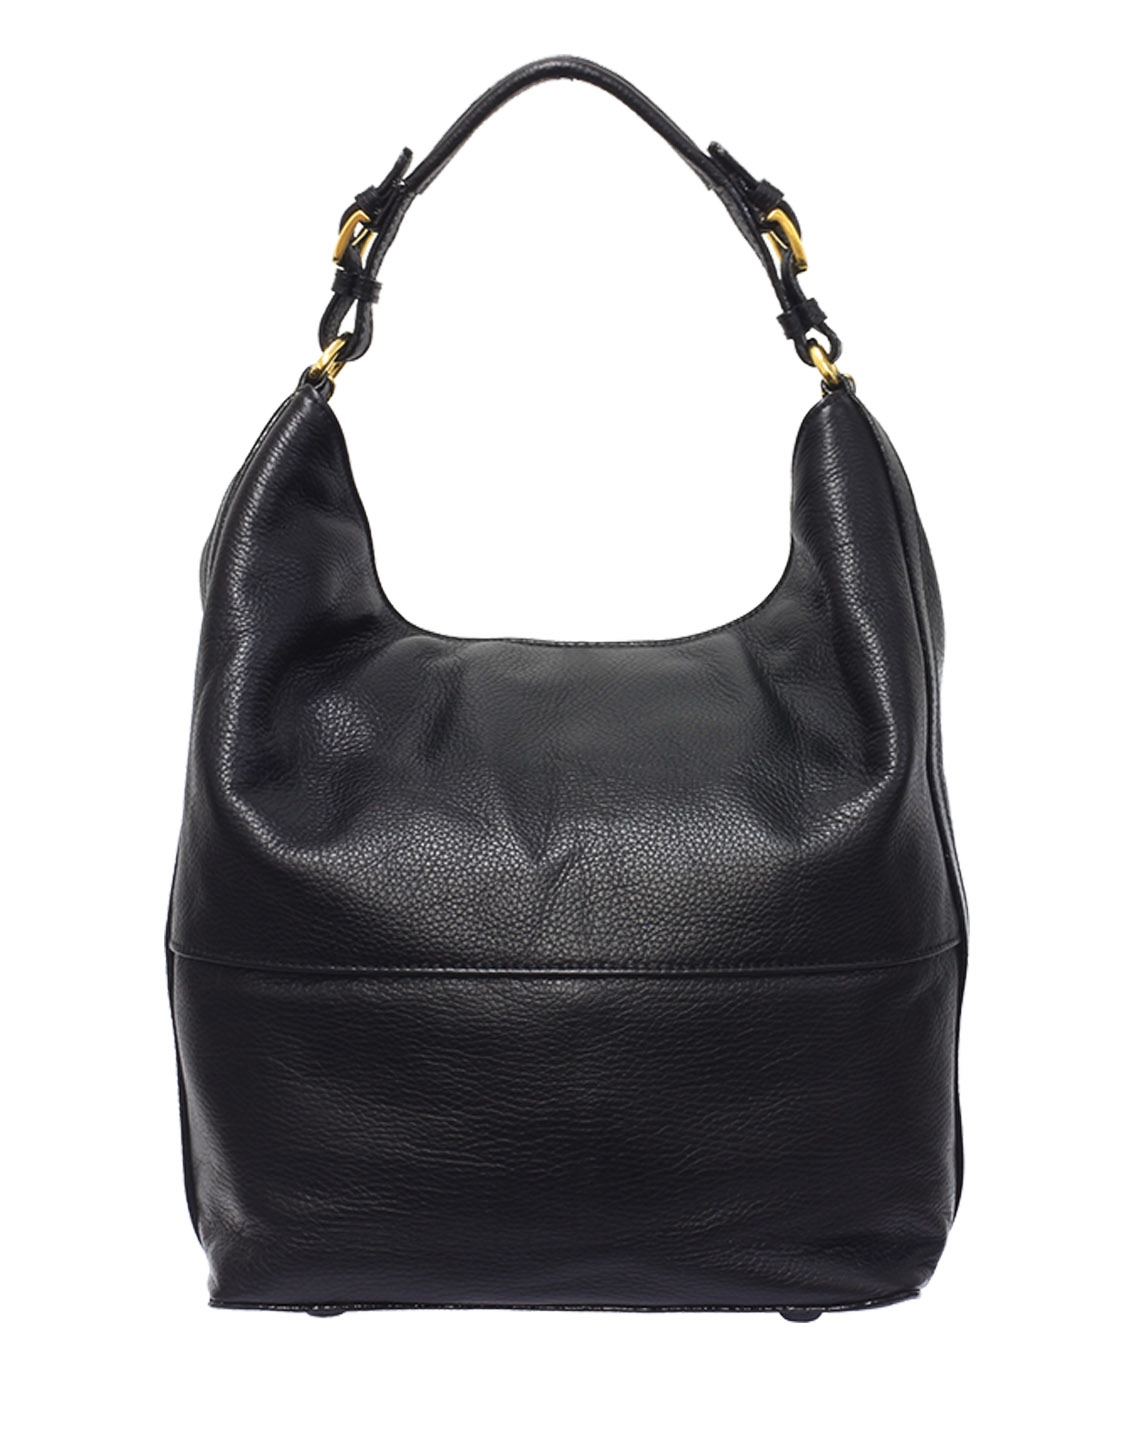 Cartera Tote Bag DS-2627 Color Negro